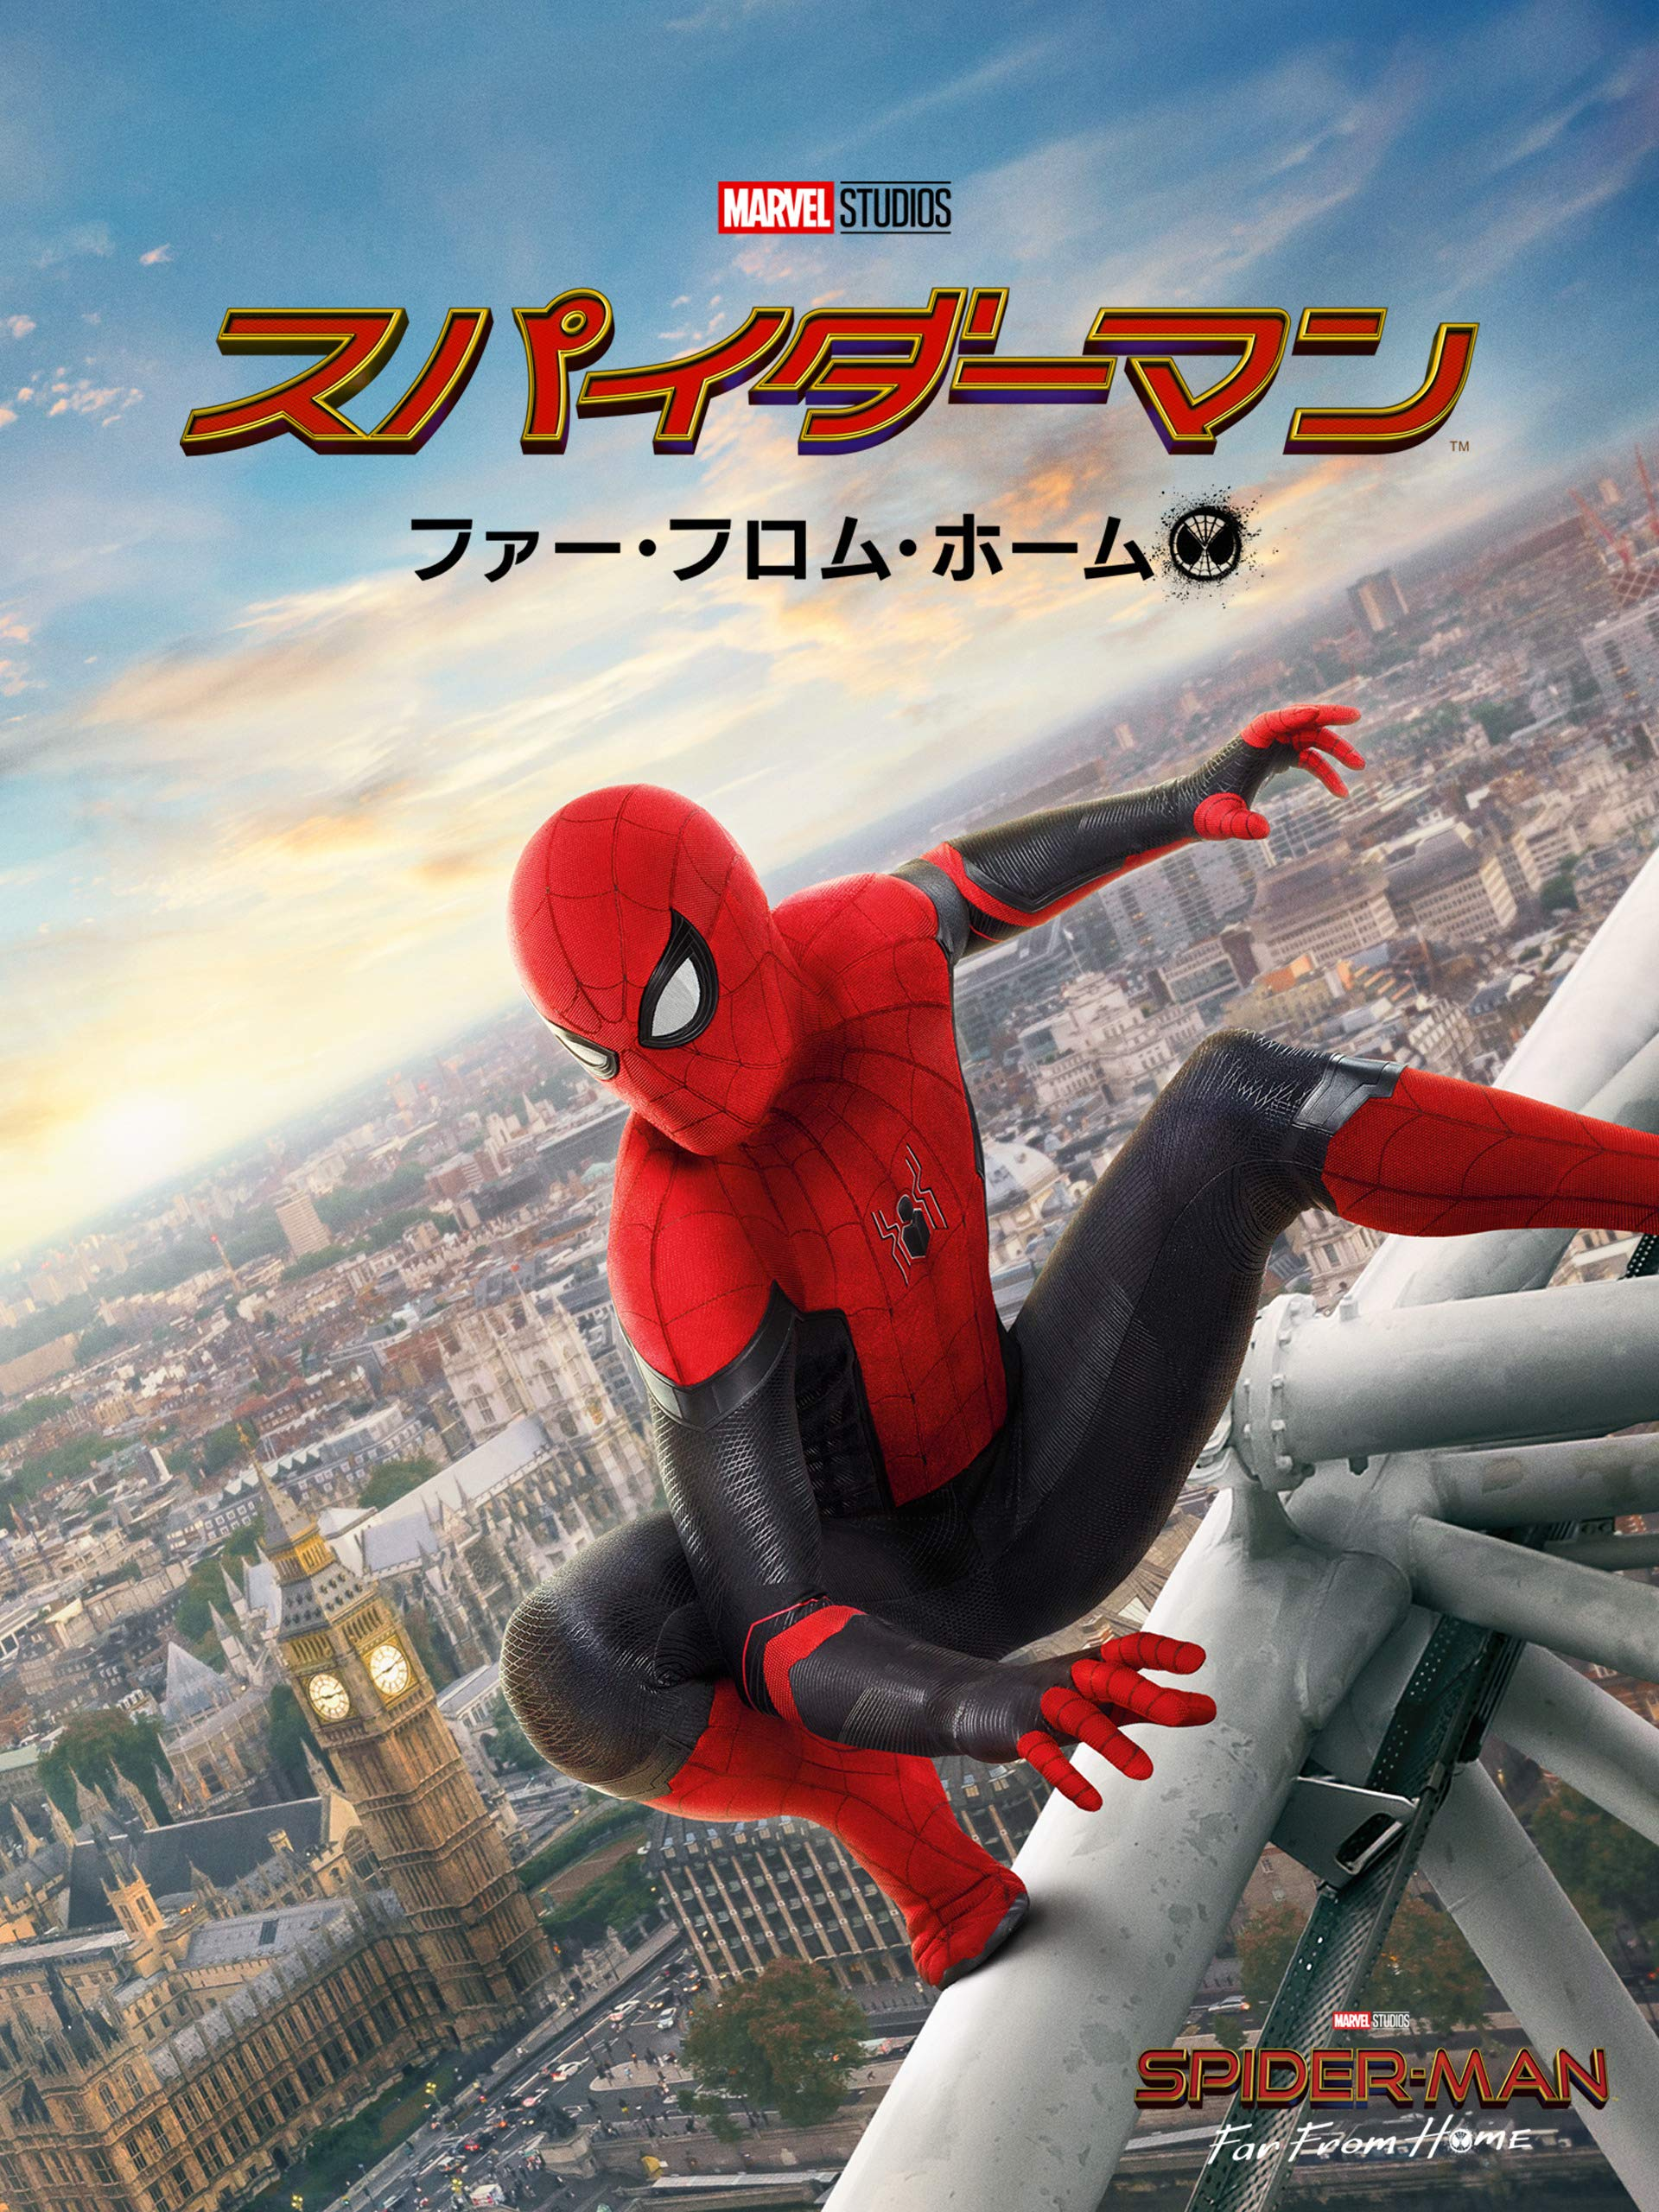 Amazon Co Jp スパイダーマン ファー フロム ホーム 字幕版 を観る Prime Video